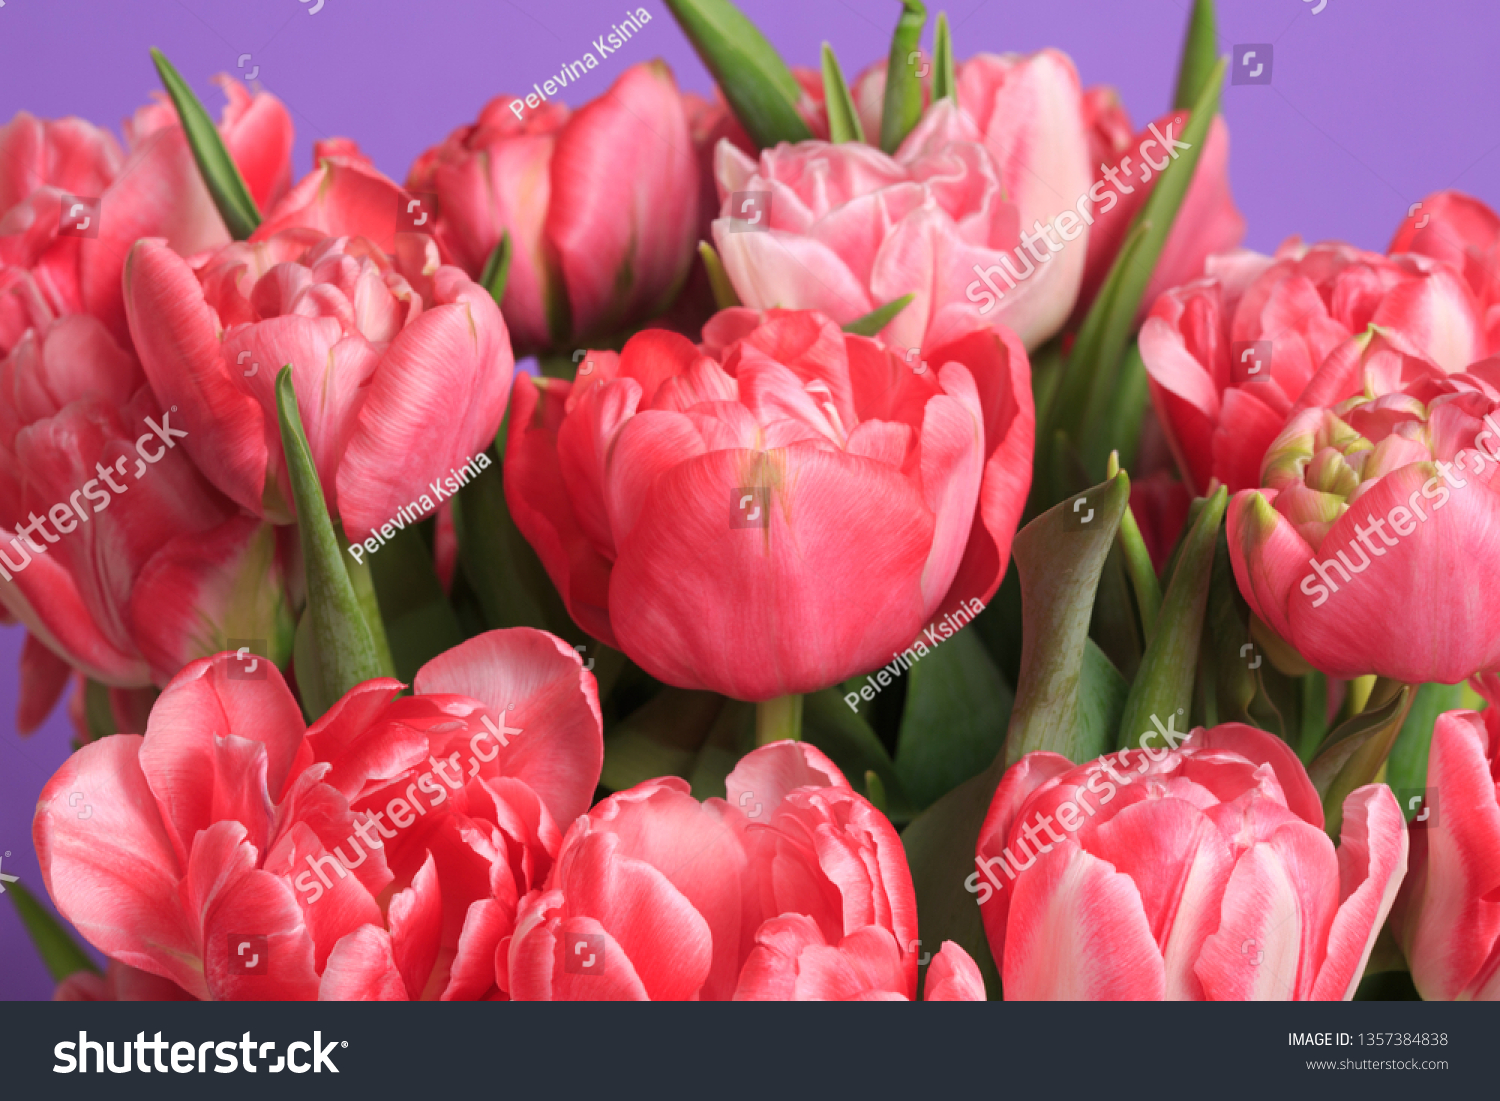 Floral Wallpaper Fragment Bouquet Coral Tulips Stock Photo Edit